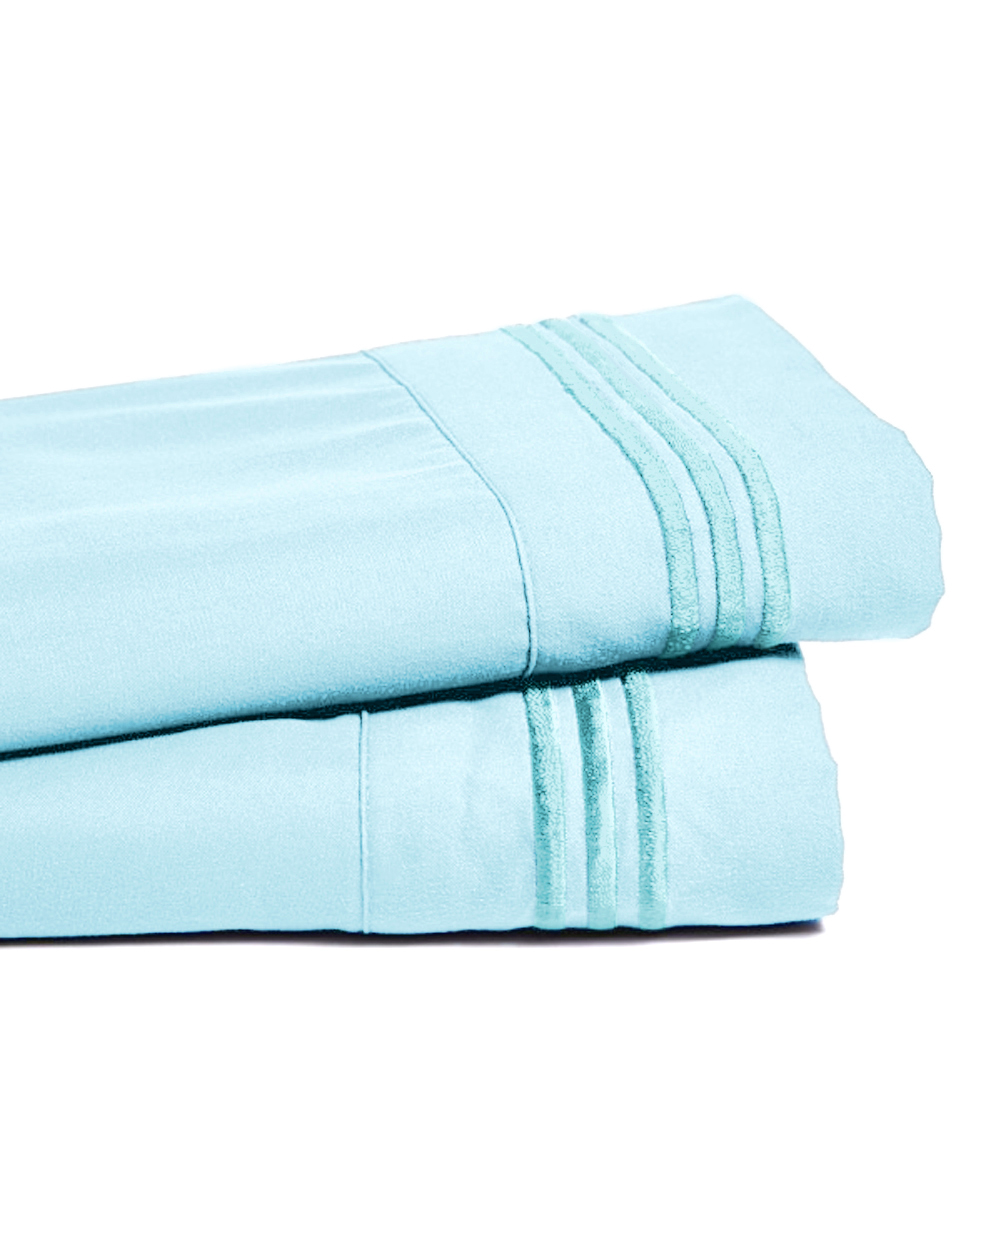 Deep Pocket Bamboo Bed Sheet - Luxury 2200 Embroidered Wrinkle, Fade and Stain Resistant Sheets - Aqua Sky King Size